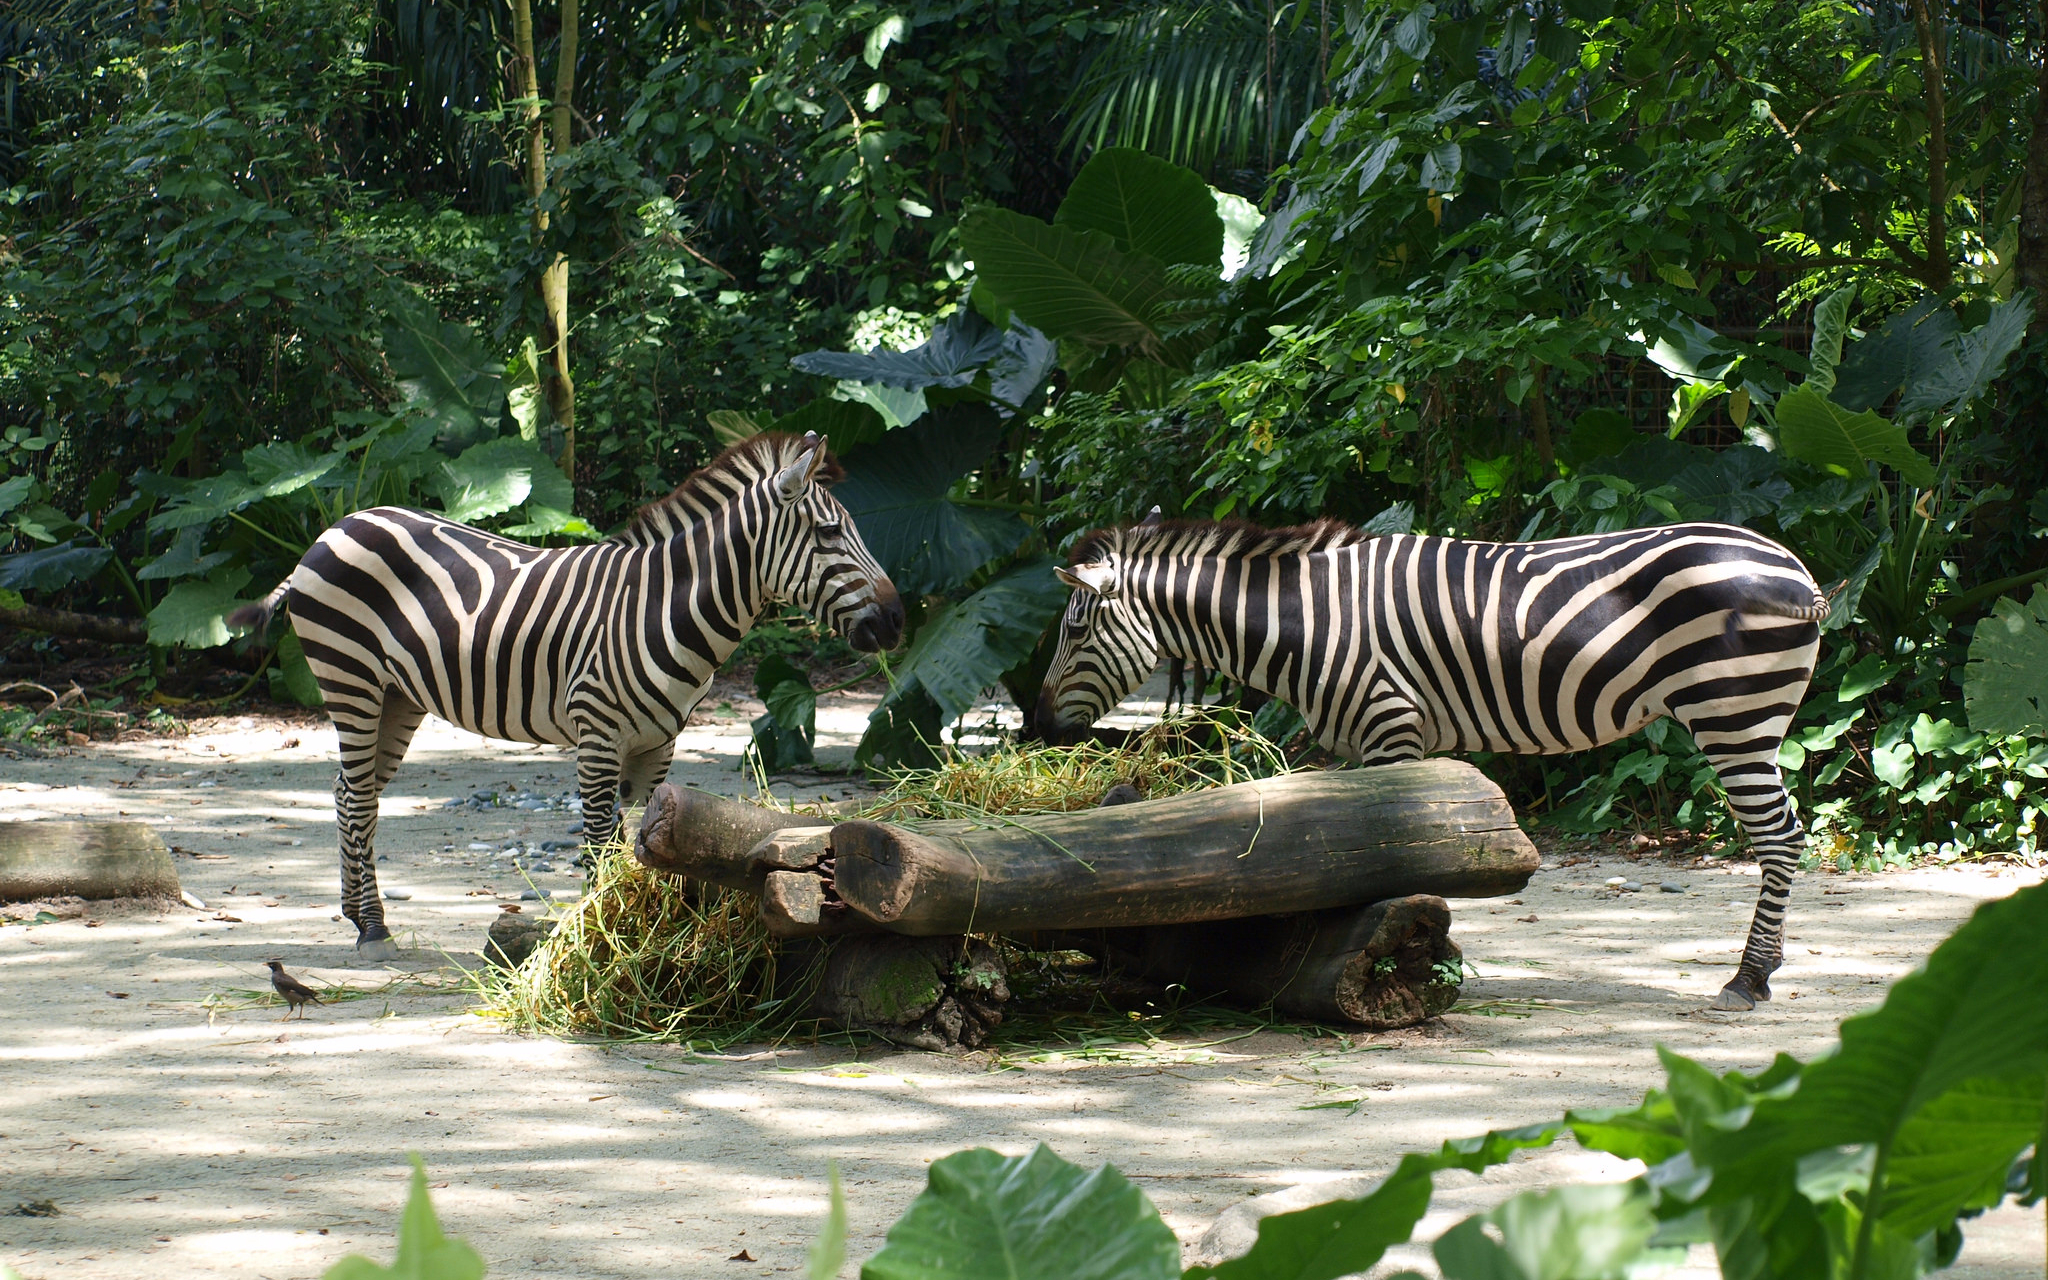 3a44b5e2 fb62 4f43 9787 fc19d38dbb1c singapore.zoo.original.12622